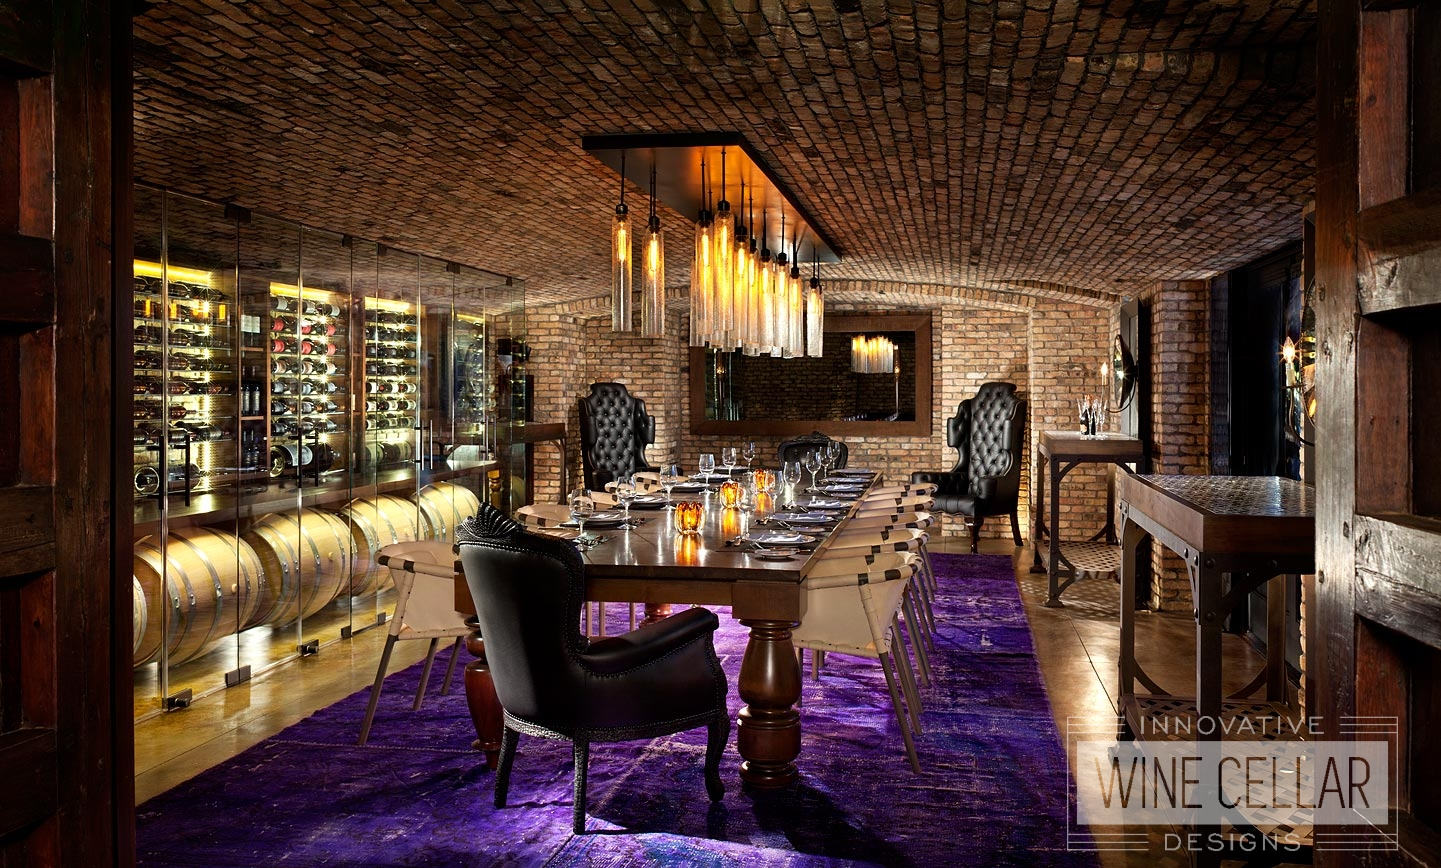 Climate Controlled Glass Wine Cellar in Wine Cave For Commercial Businesses